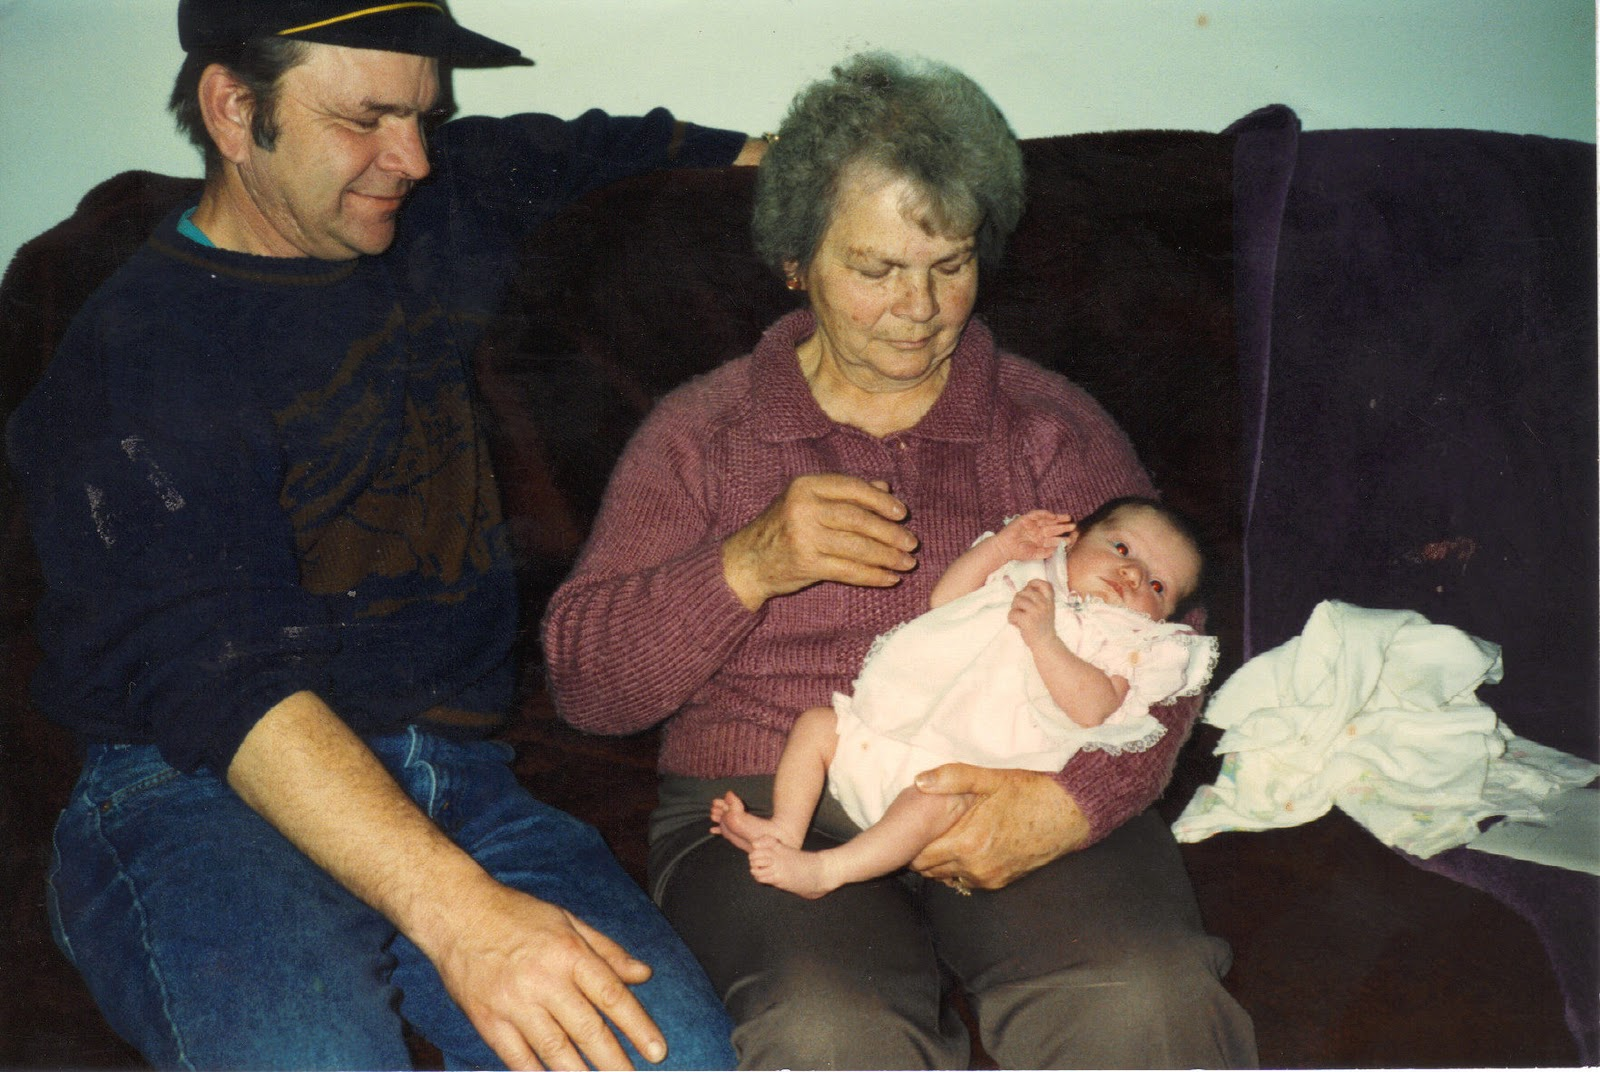 Grandma, Darren and Donna in